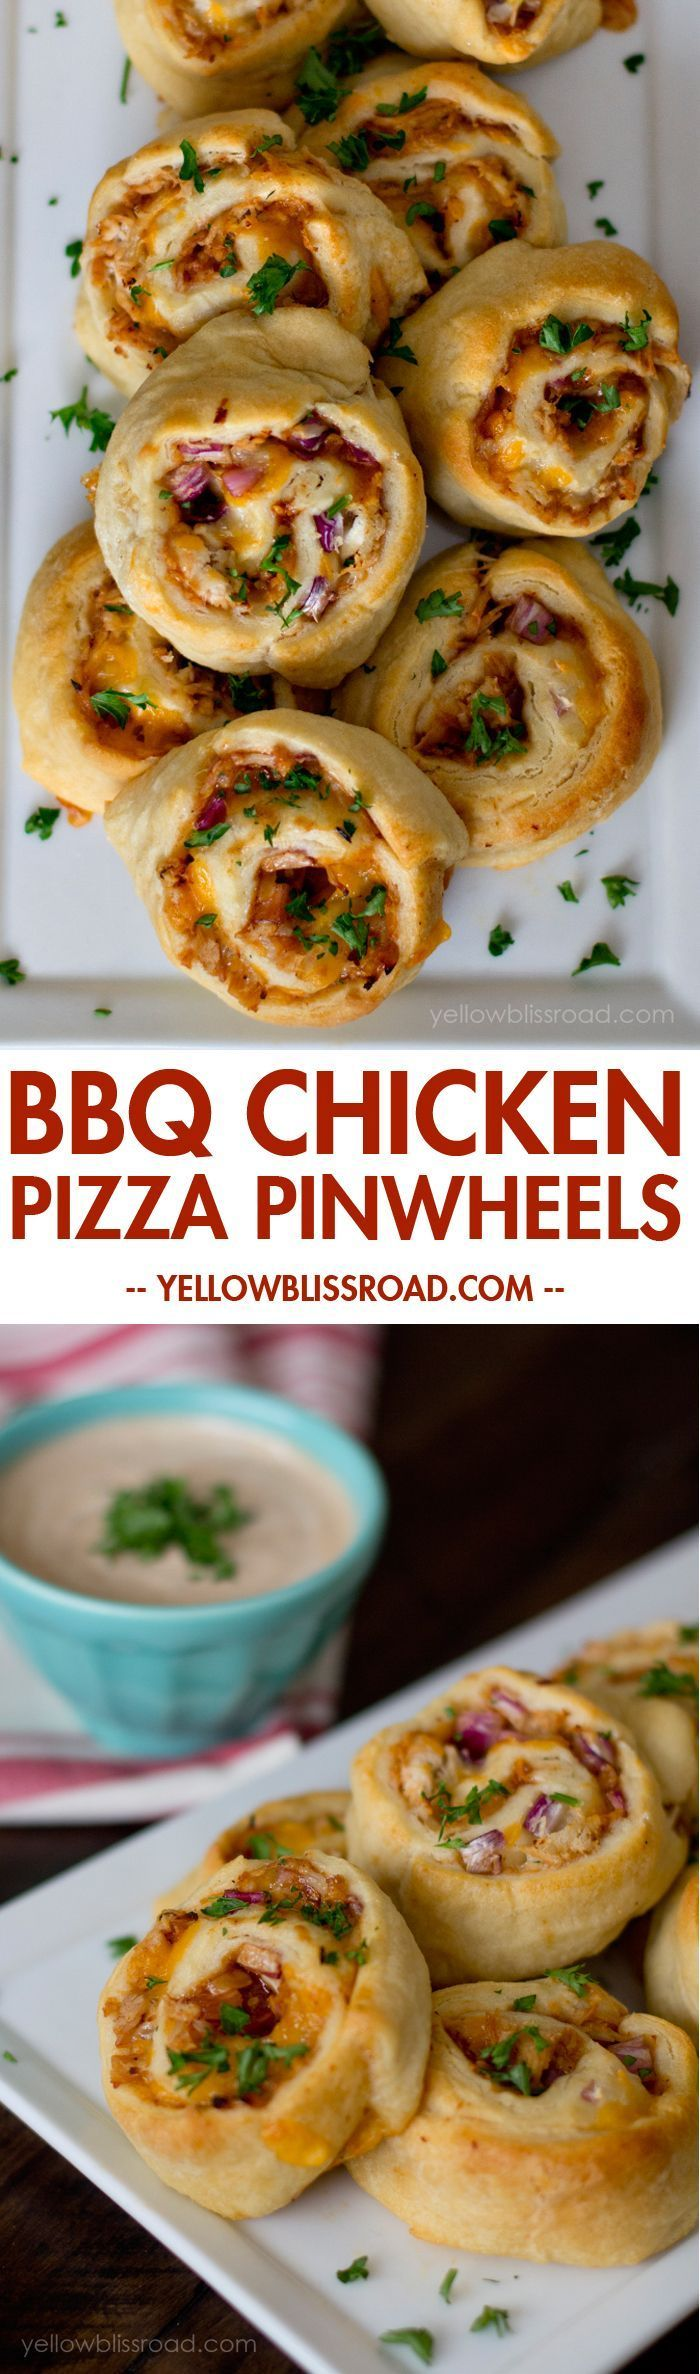 BBQ Chicken Pizza Pinwheels. One word for these homemade snacks... YUM! These are perfect for an after-school snack or Superbowl party appetizer!